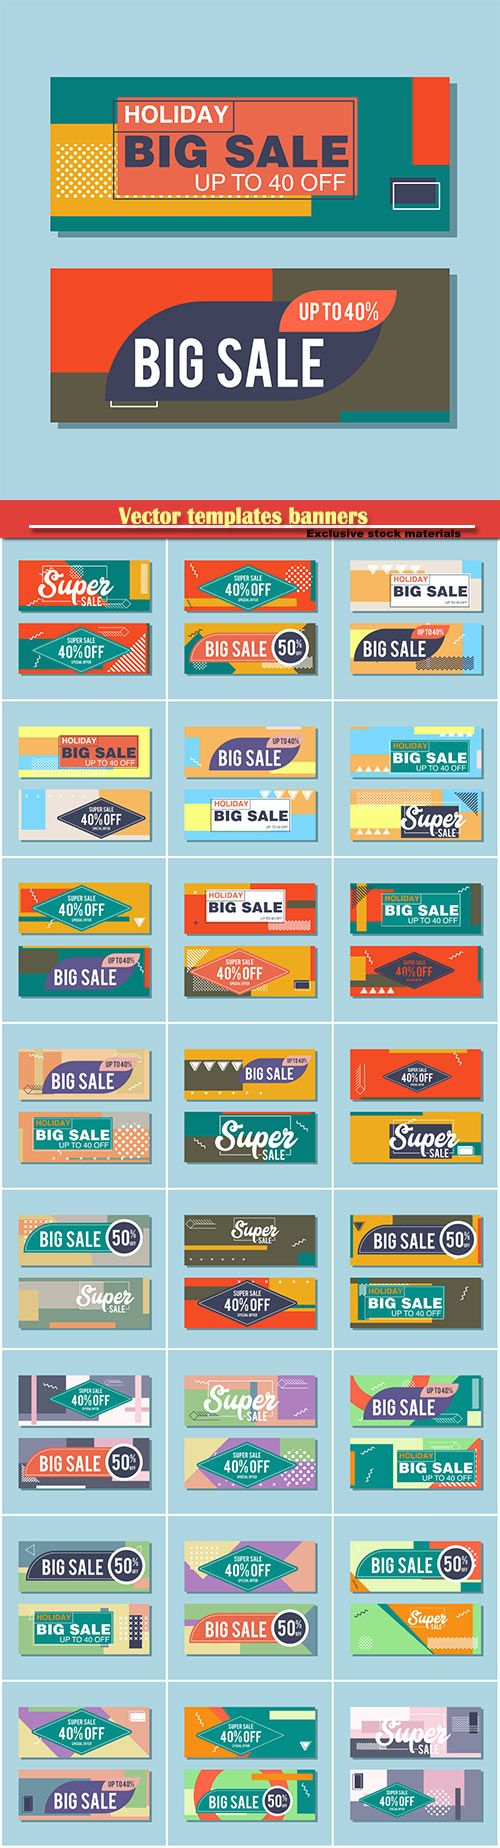 Download Vectors  templates banners coupon codes and vouchers Free